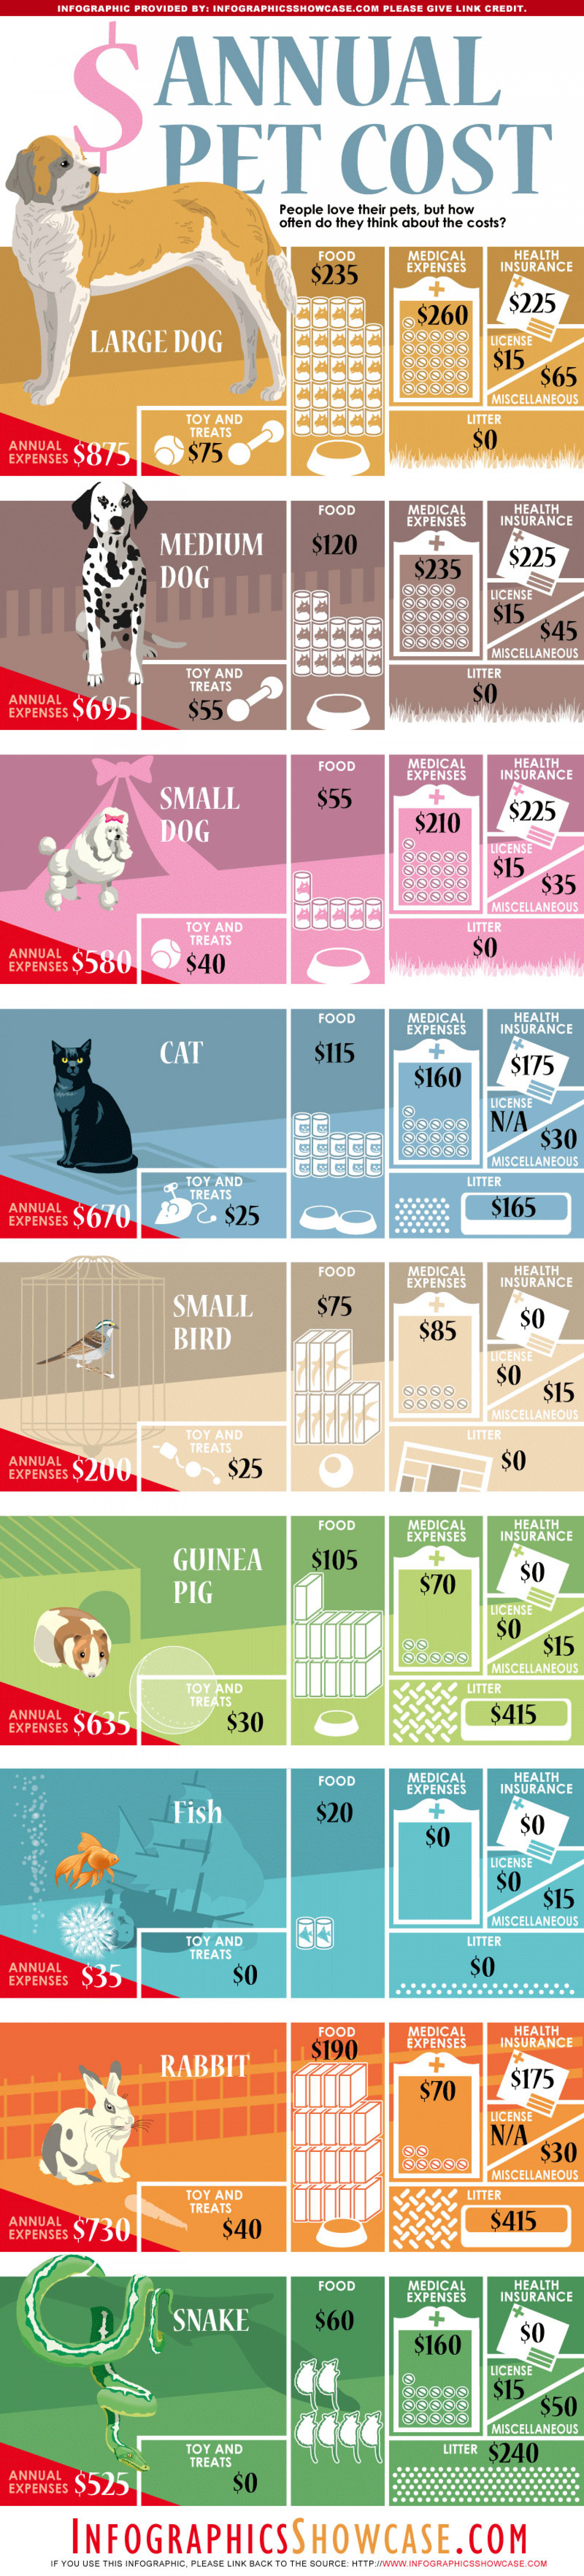 Annual Cost of Pets Infographic